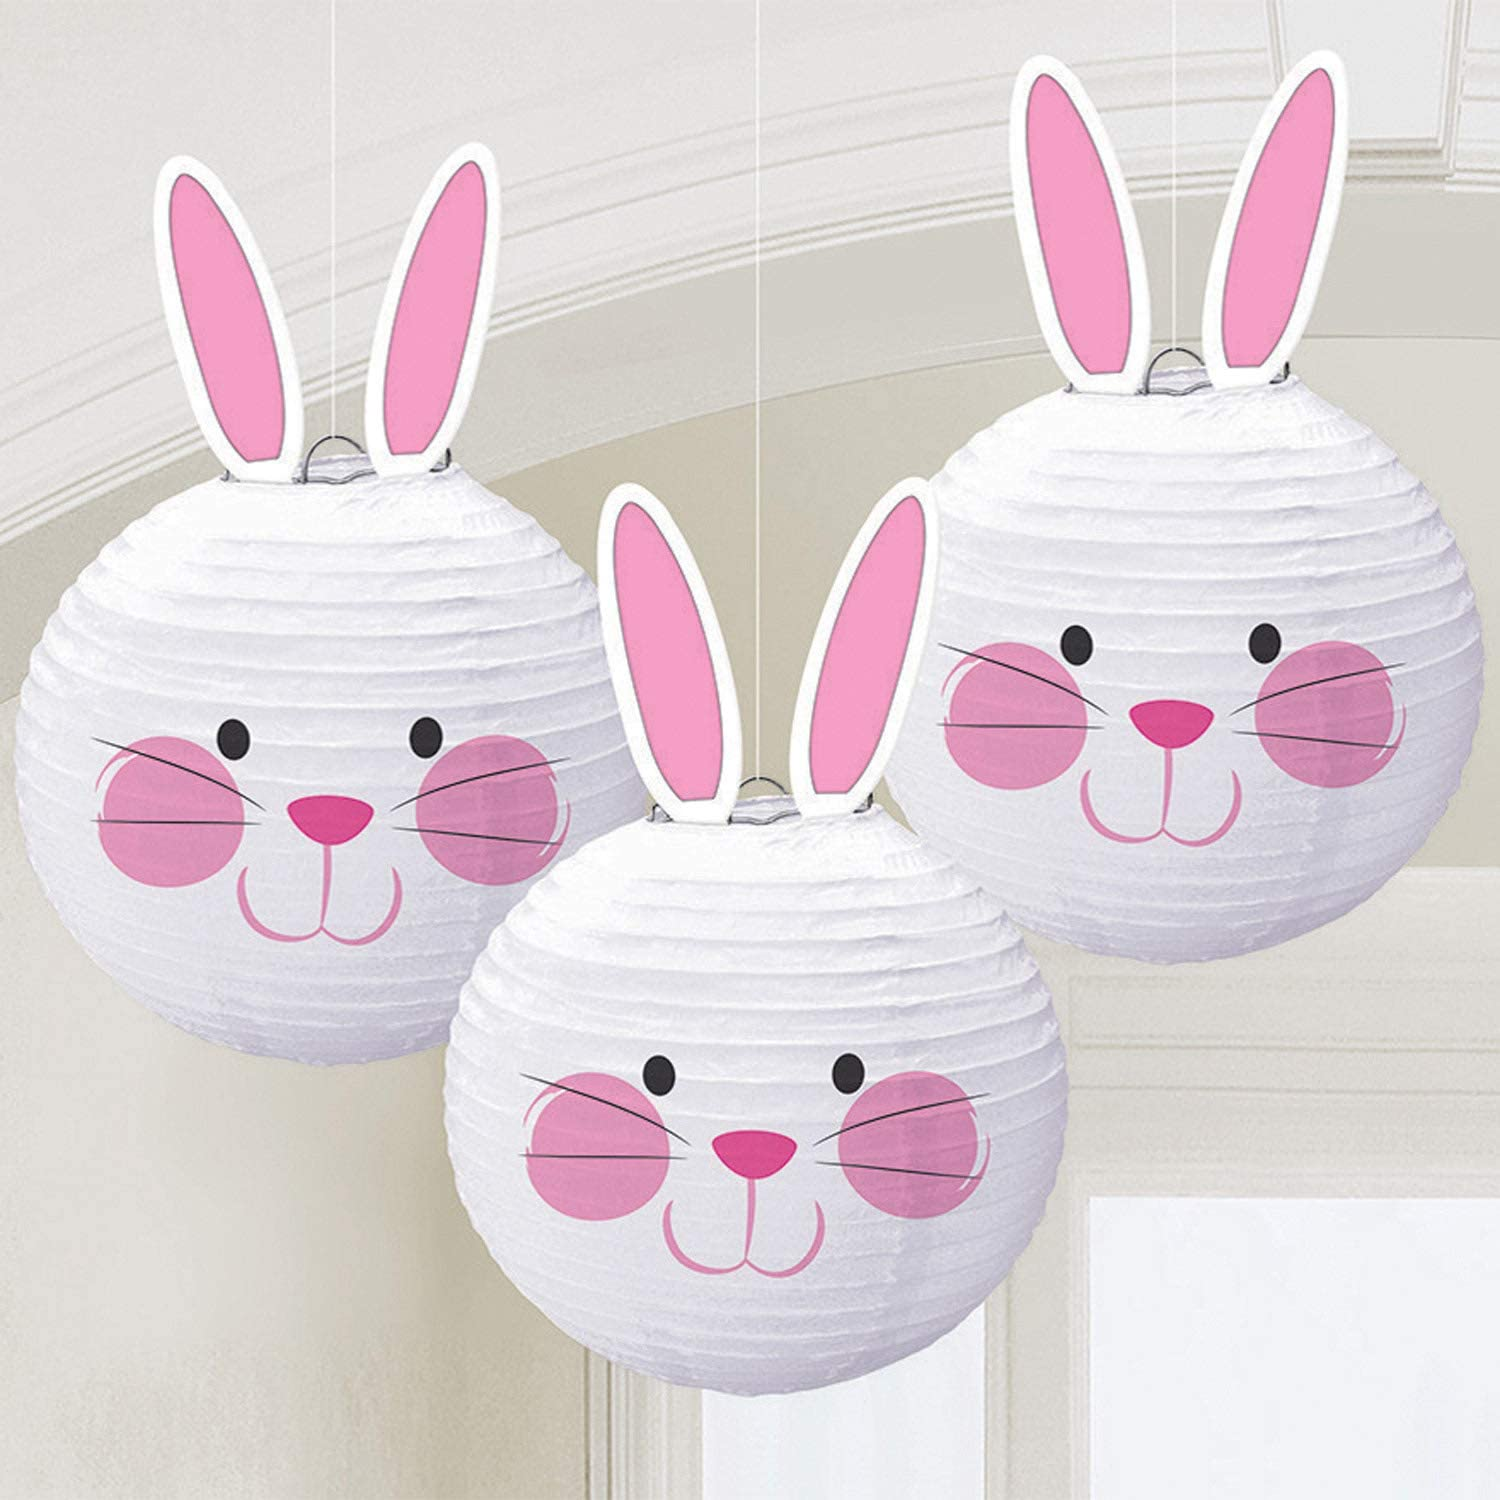 Multicolored Bunny Shaped Paper Lanterns, 3 Ct. | Easter Decoration